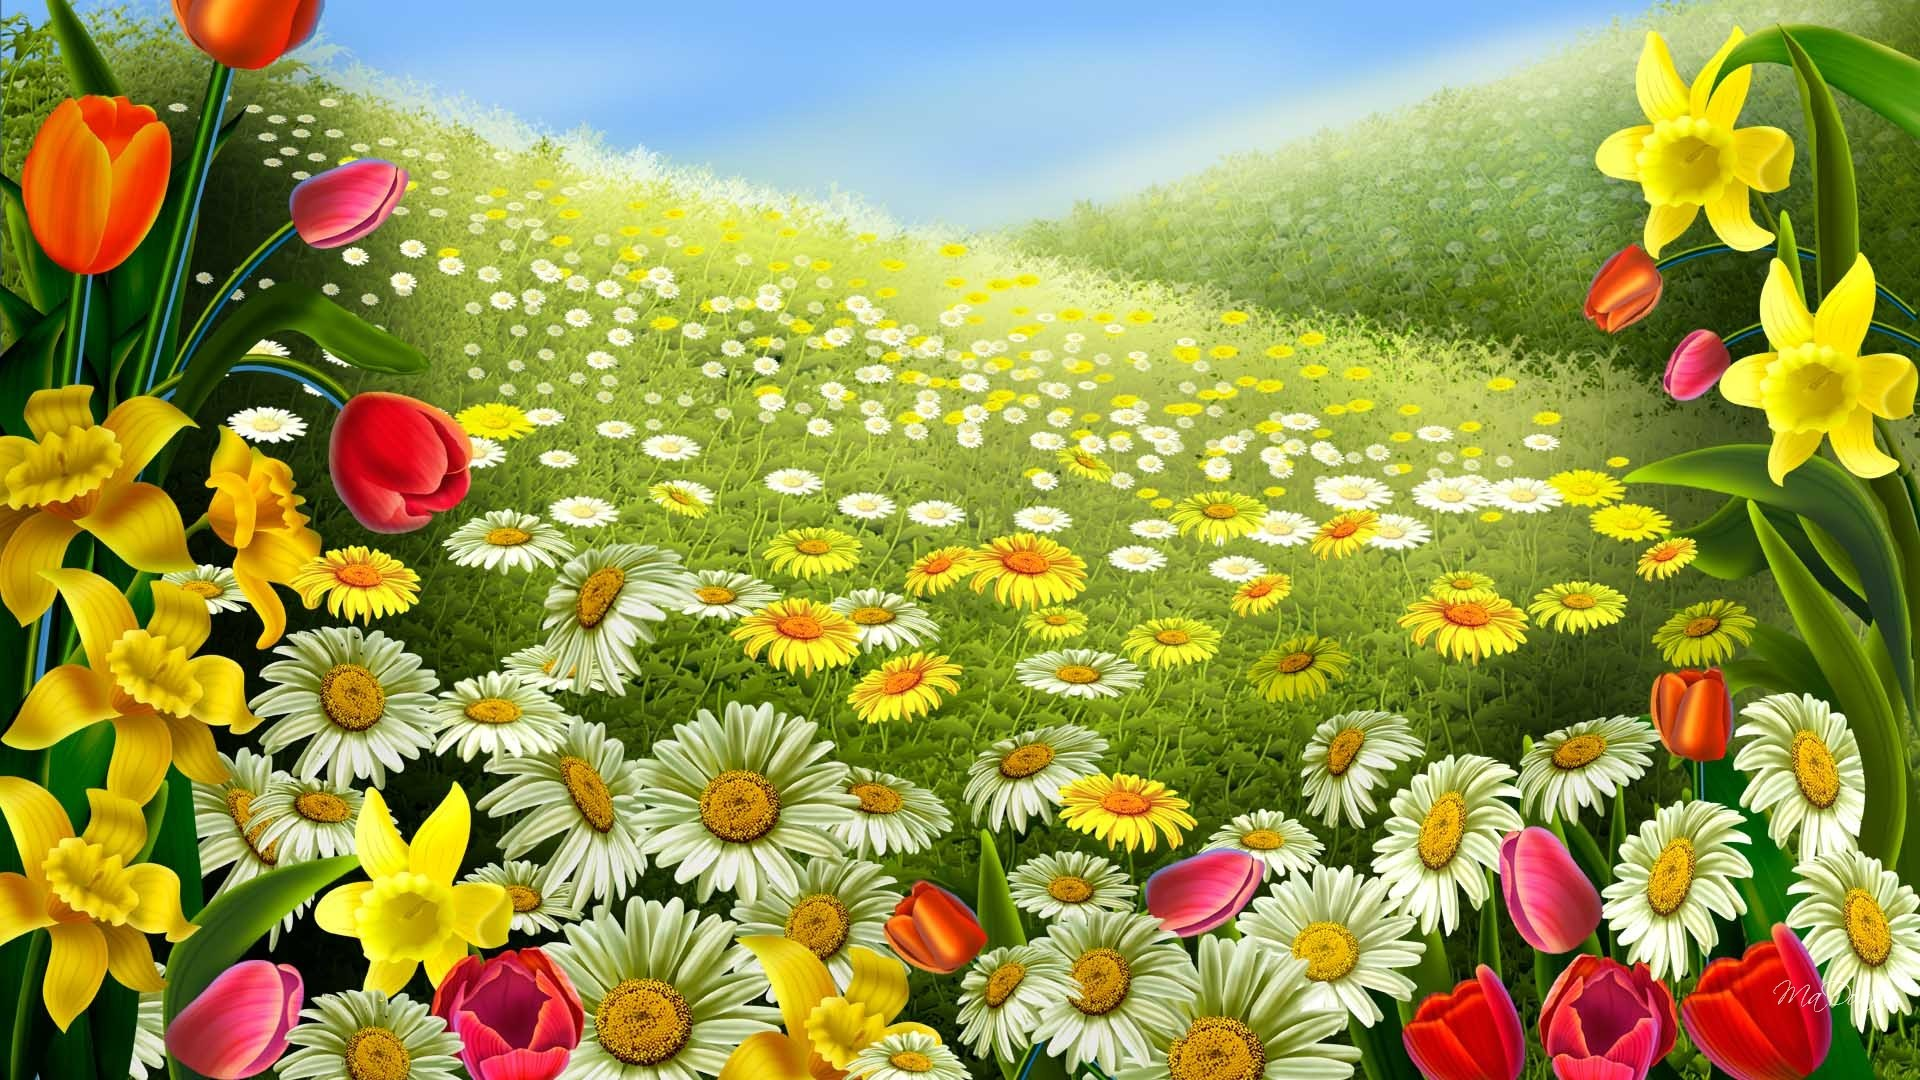 A cartoonistic garden of variety of flowers